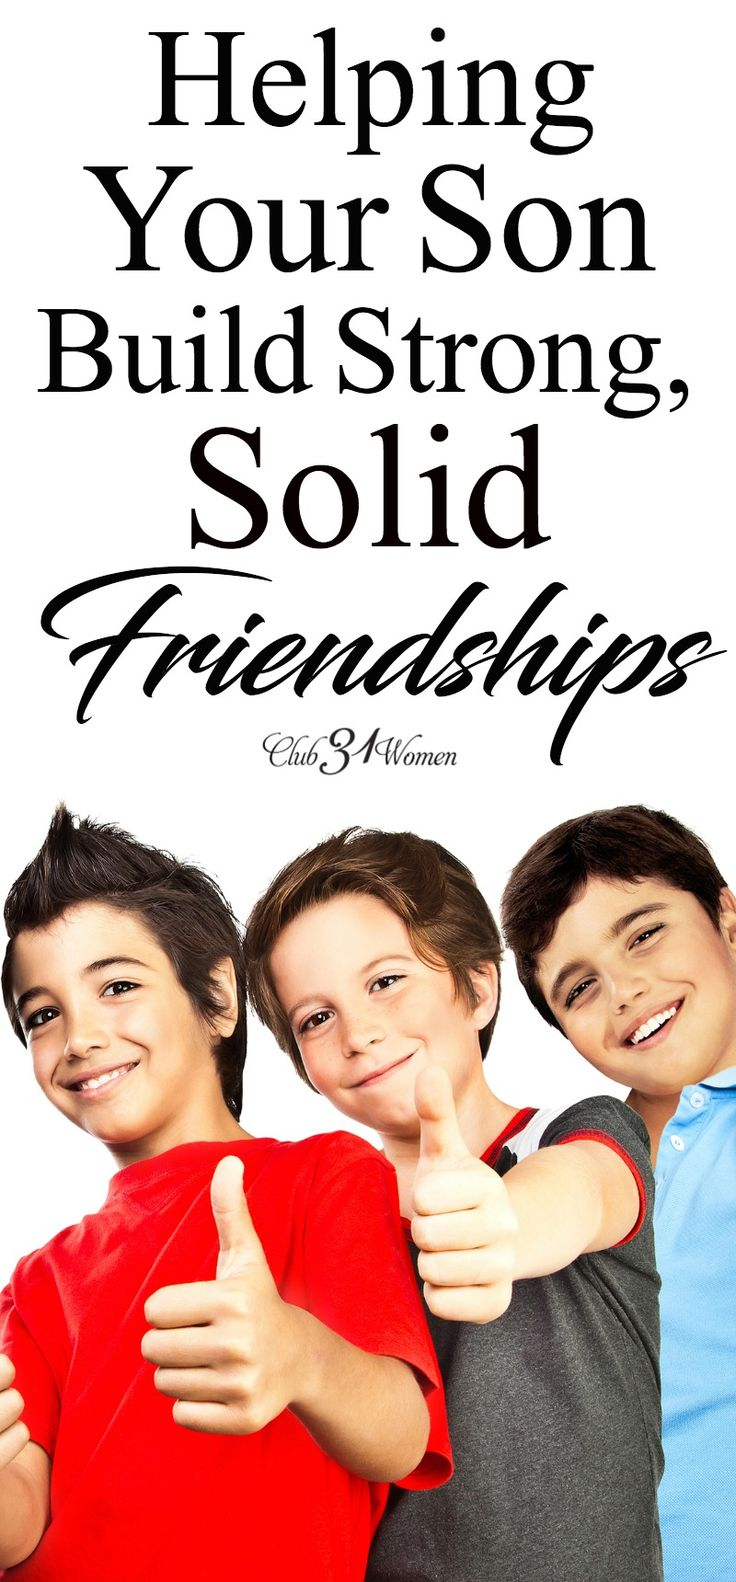 Friendship plays such a powerful role in a young man's life! But often our sons need encouragement and wisdom from us to build strong, positive friendships. via @Club31Women